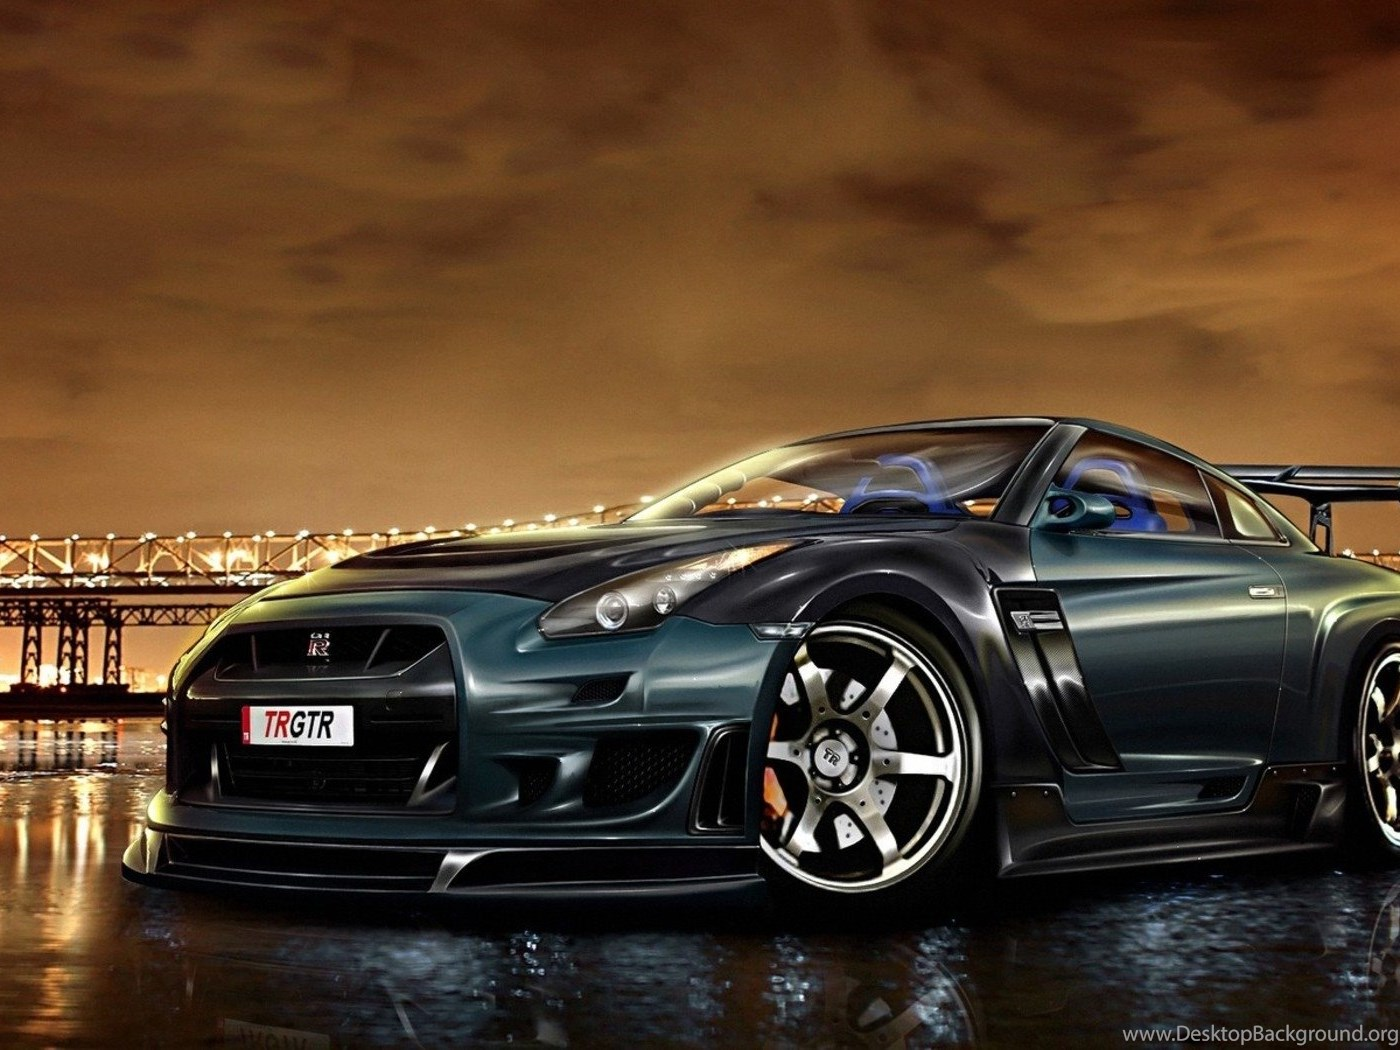 Nissan Skyline Gtr Wallpapers Widescreen Desktop Background